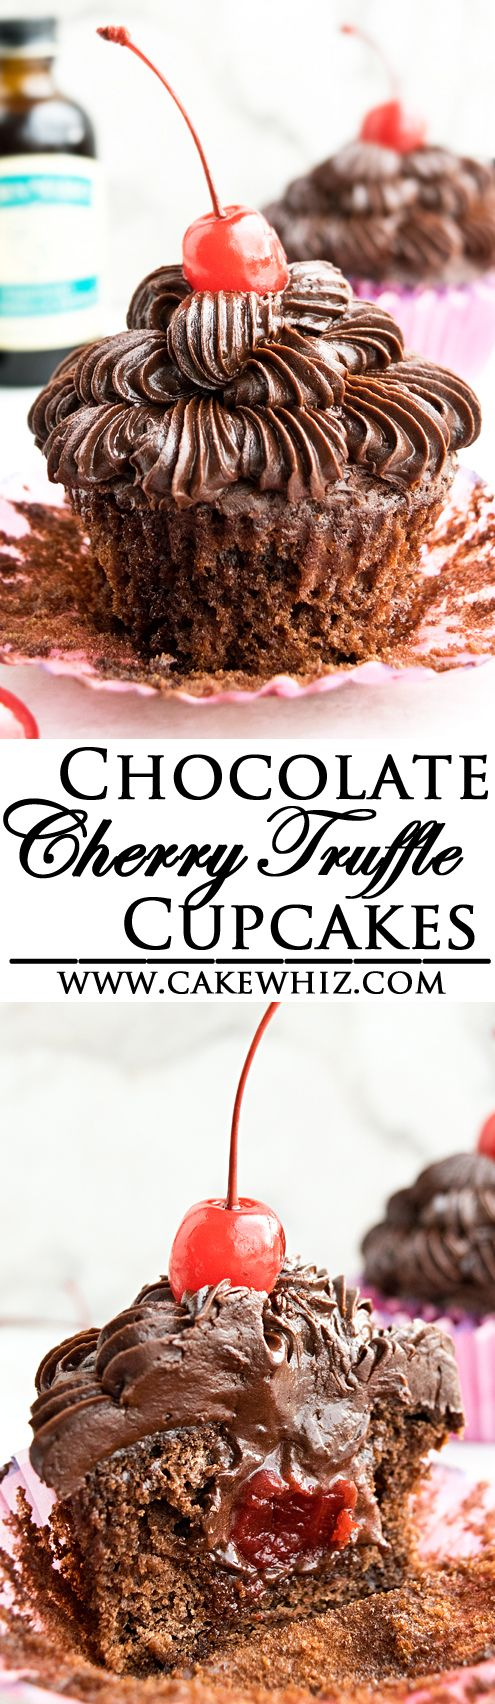 These soft and moist CHOCOLATE CHERRY CUPCAKES are made with maraschino cherries. They are stuffed with fudgy chocolate cherry truffles and also topped off with chocolate fudge frosting. {Ad} From cakewhiz.com